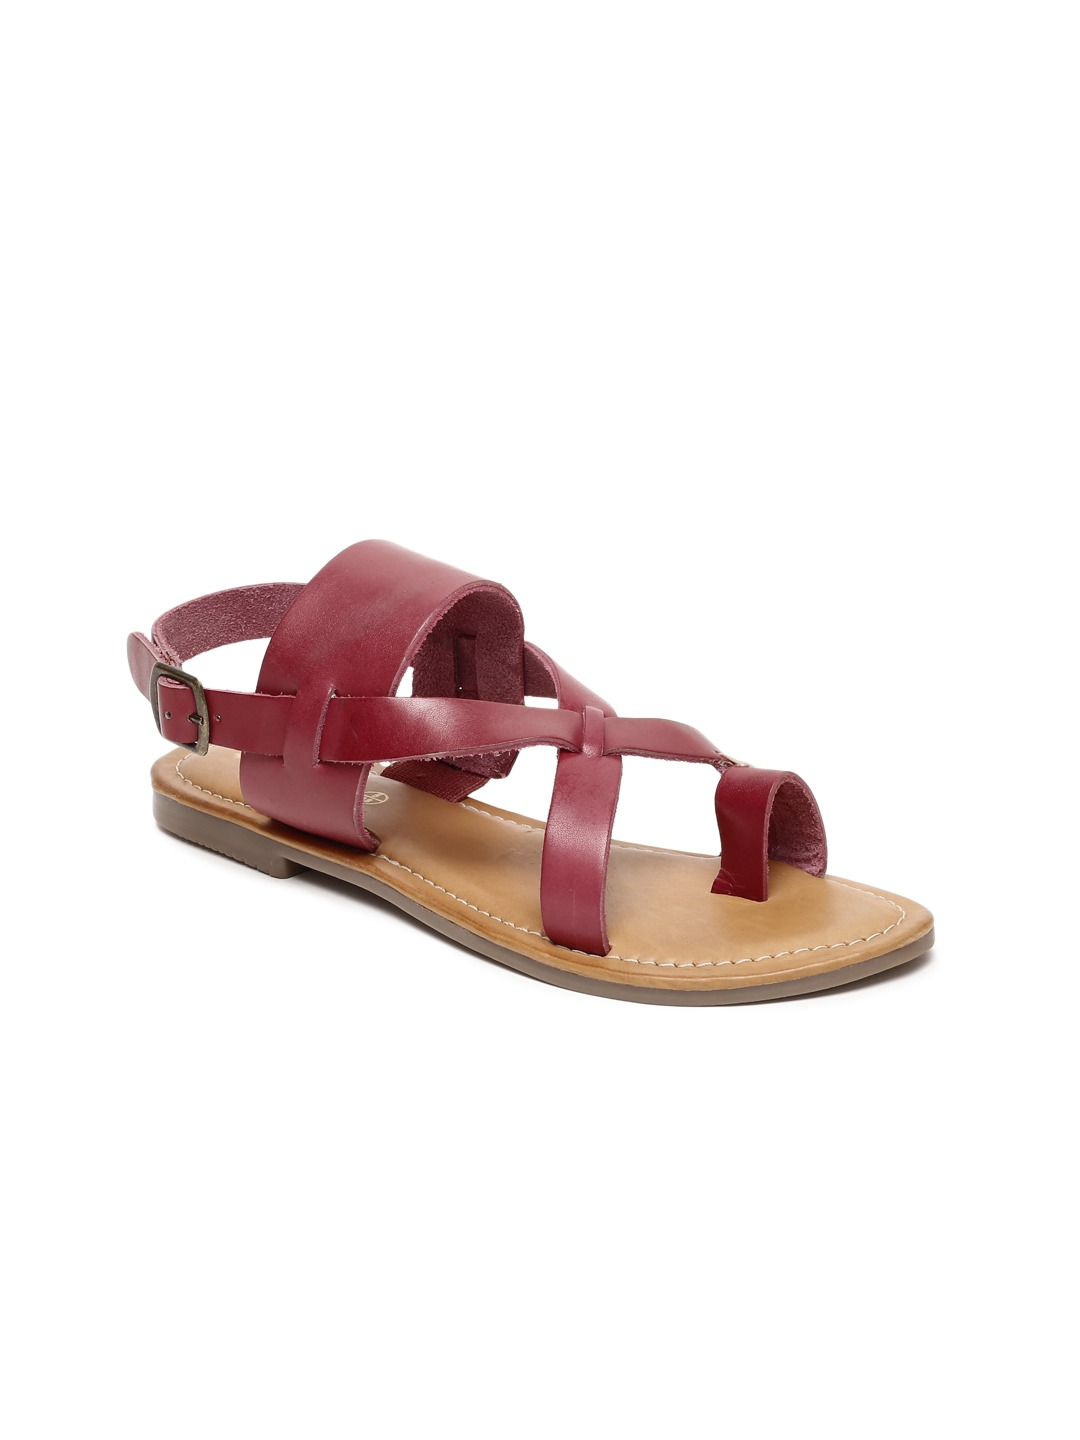 Maroon Solid Leather One Toe Flats